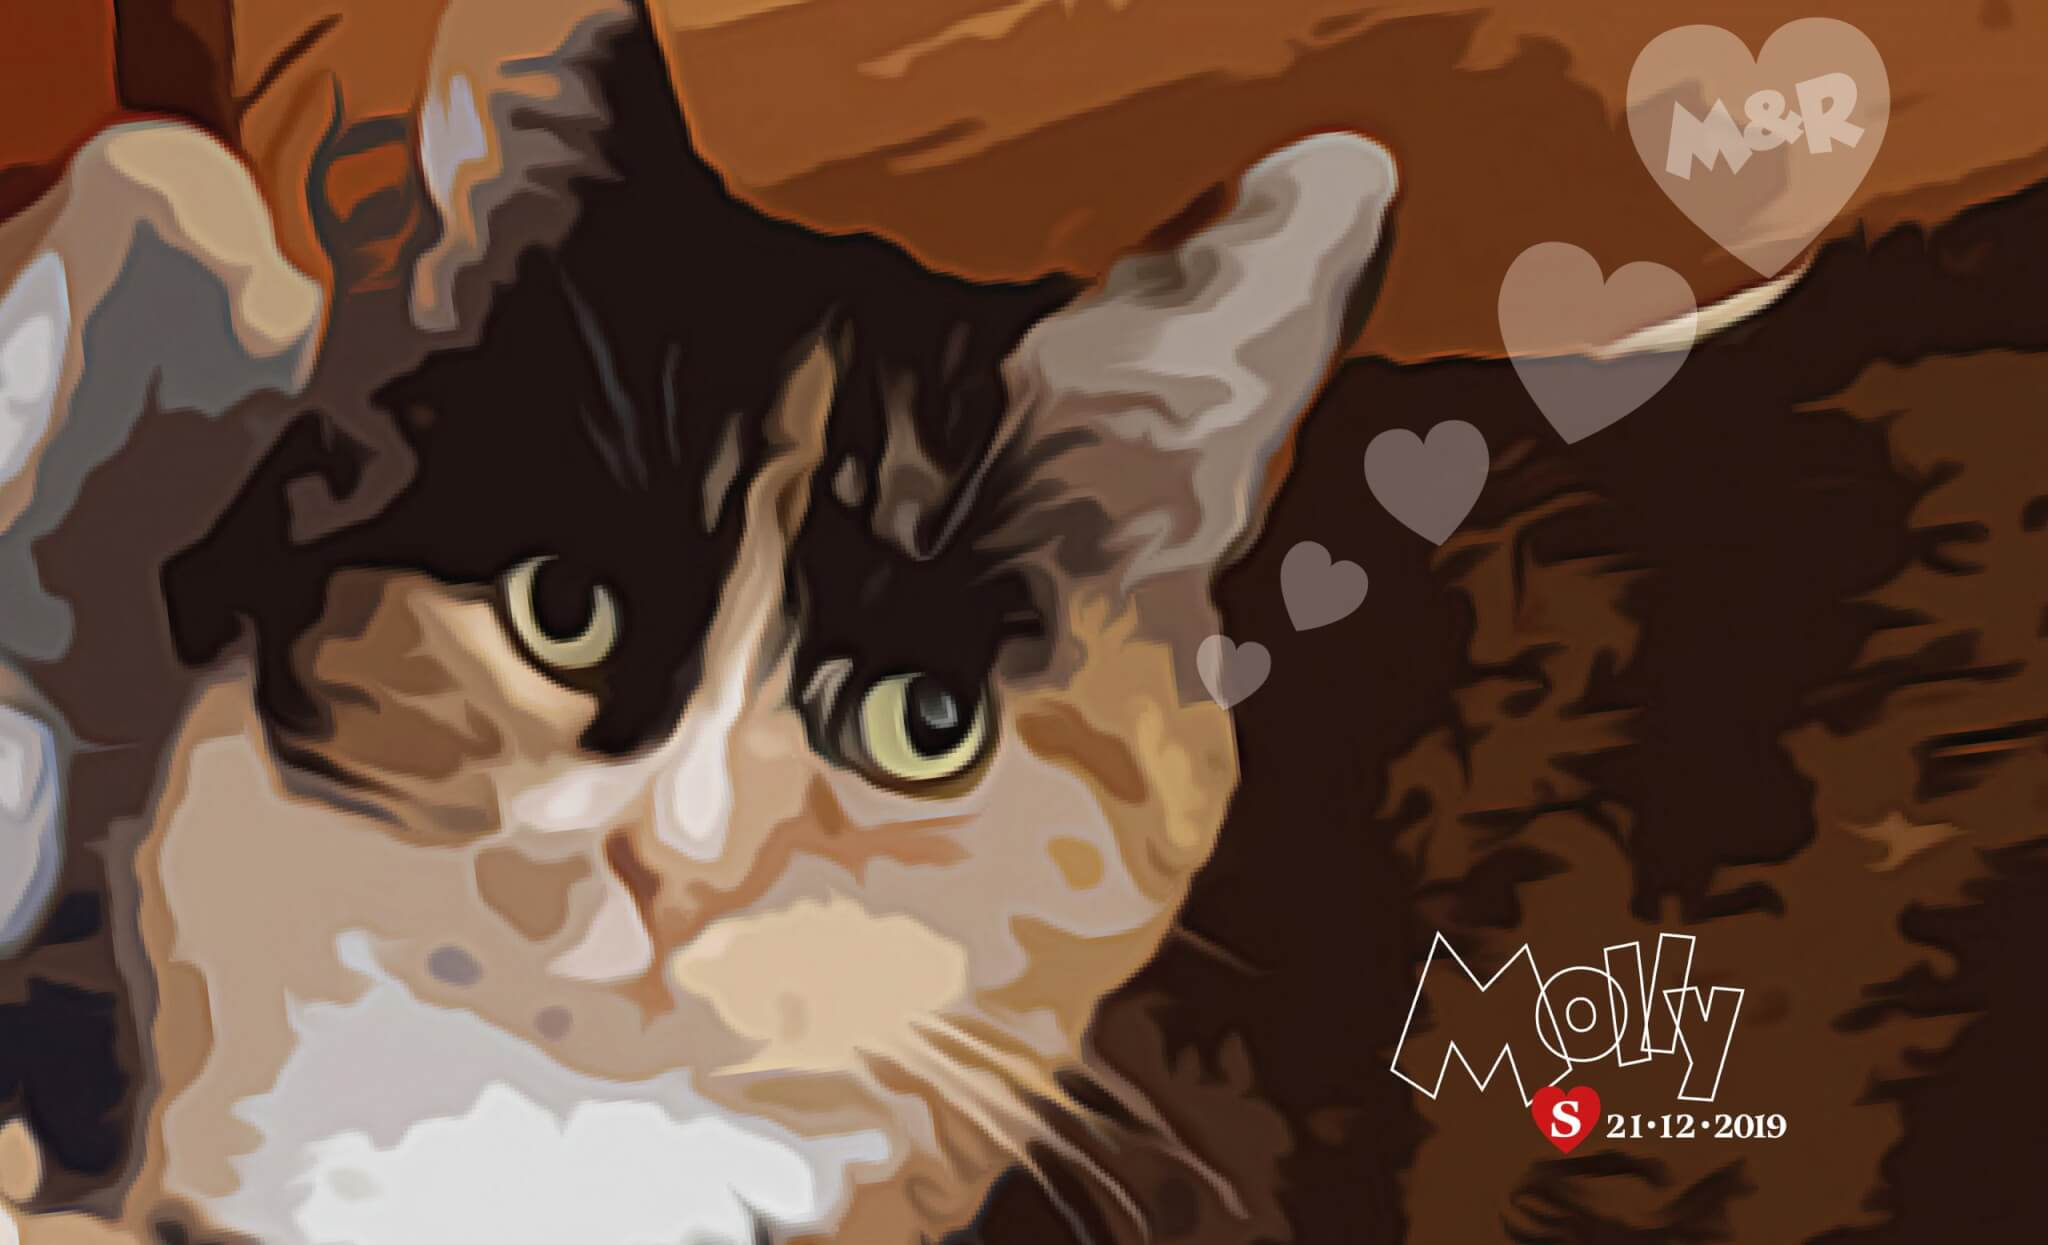 'Molly' a very shy Cat, who only has eyes for Melissa & Rob!